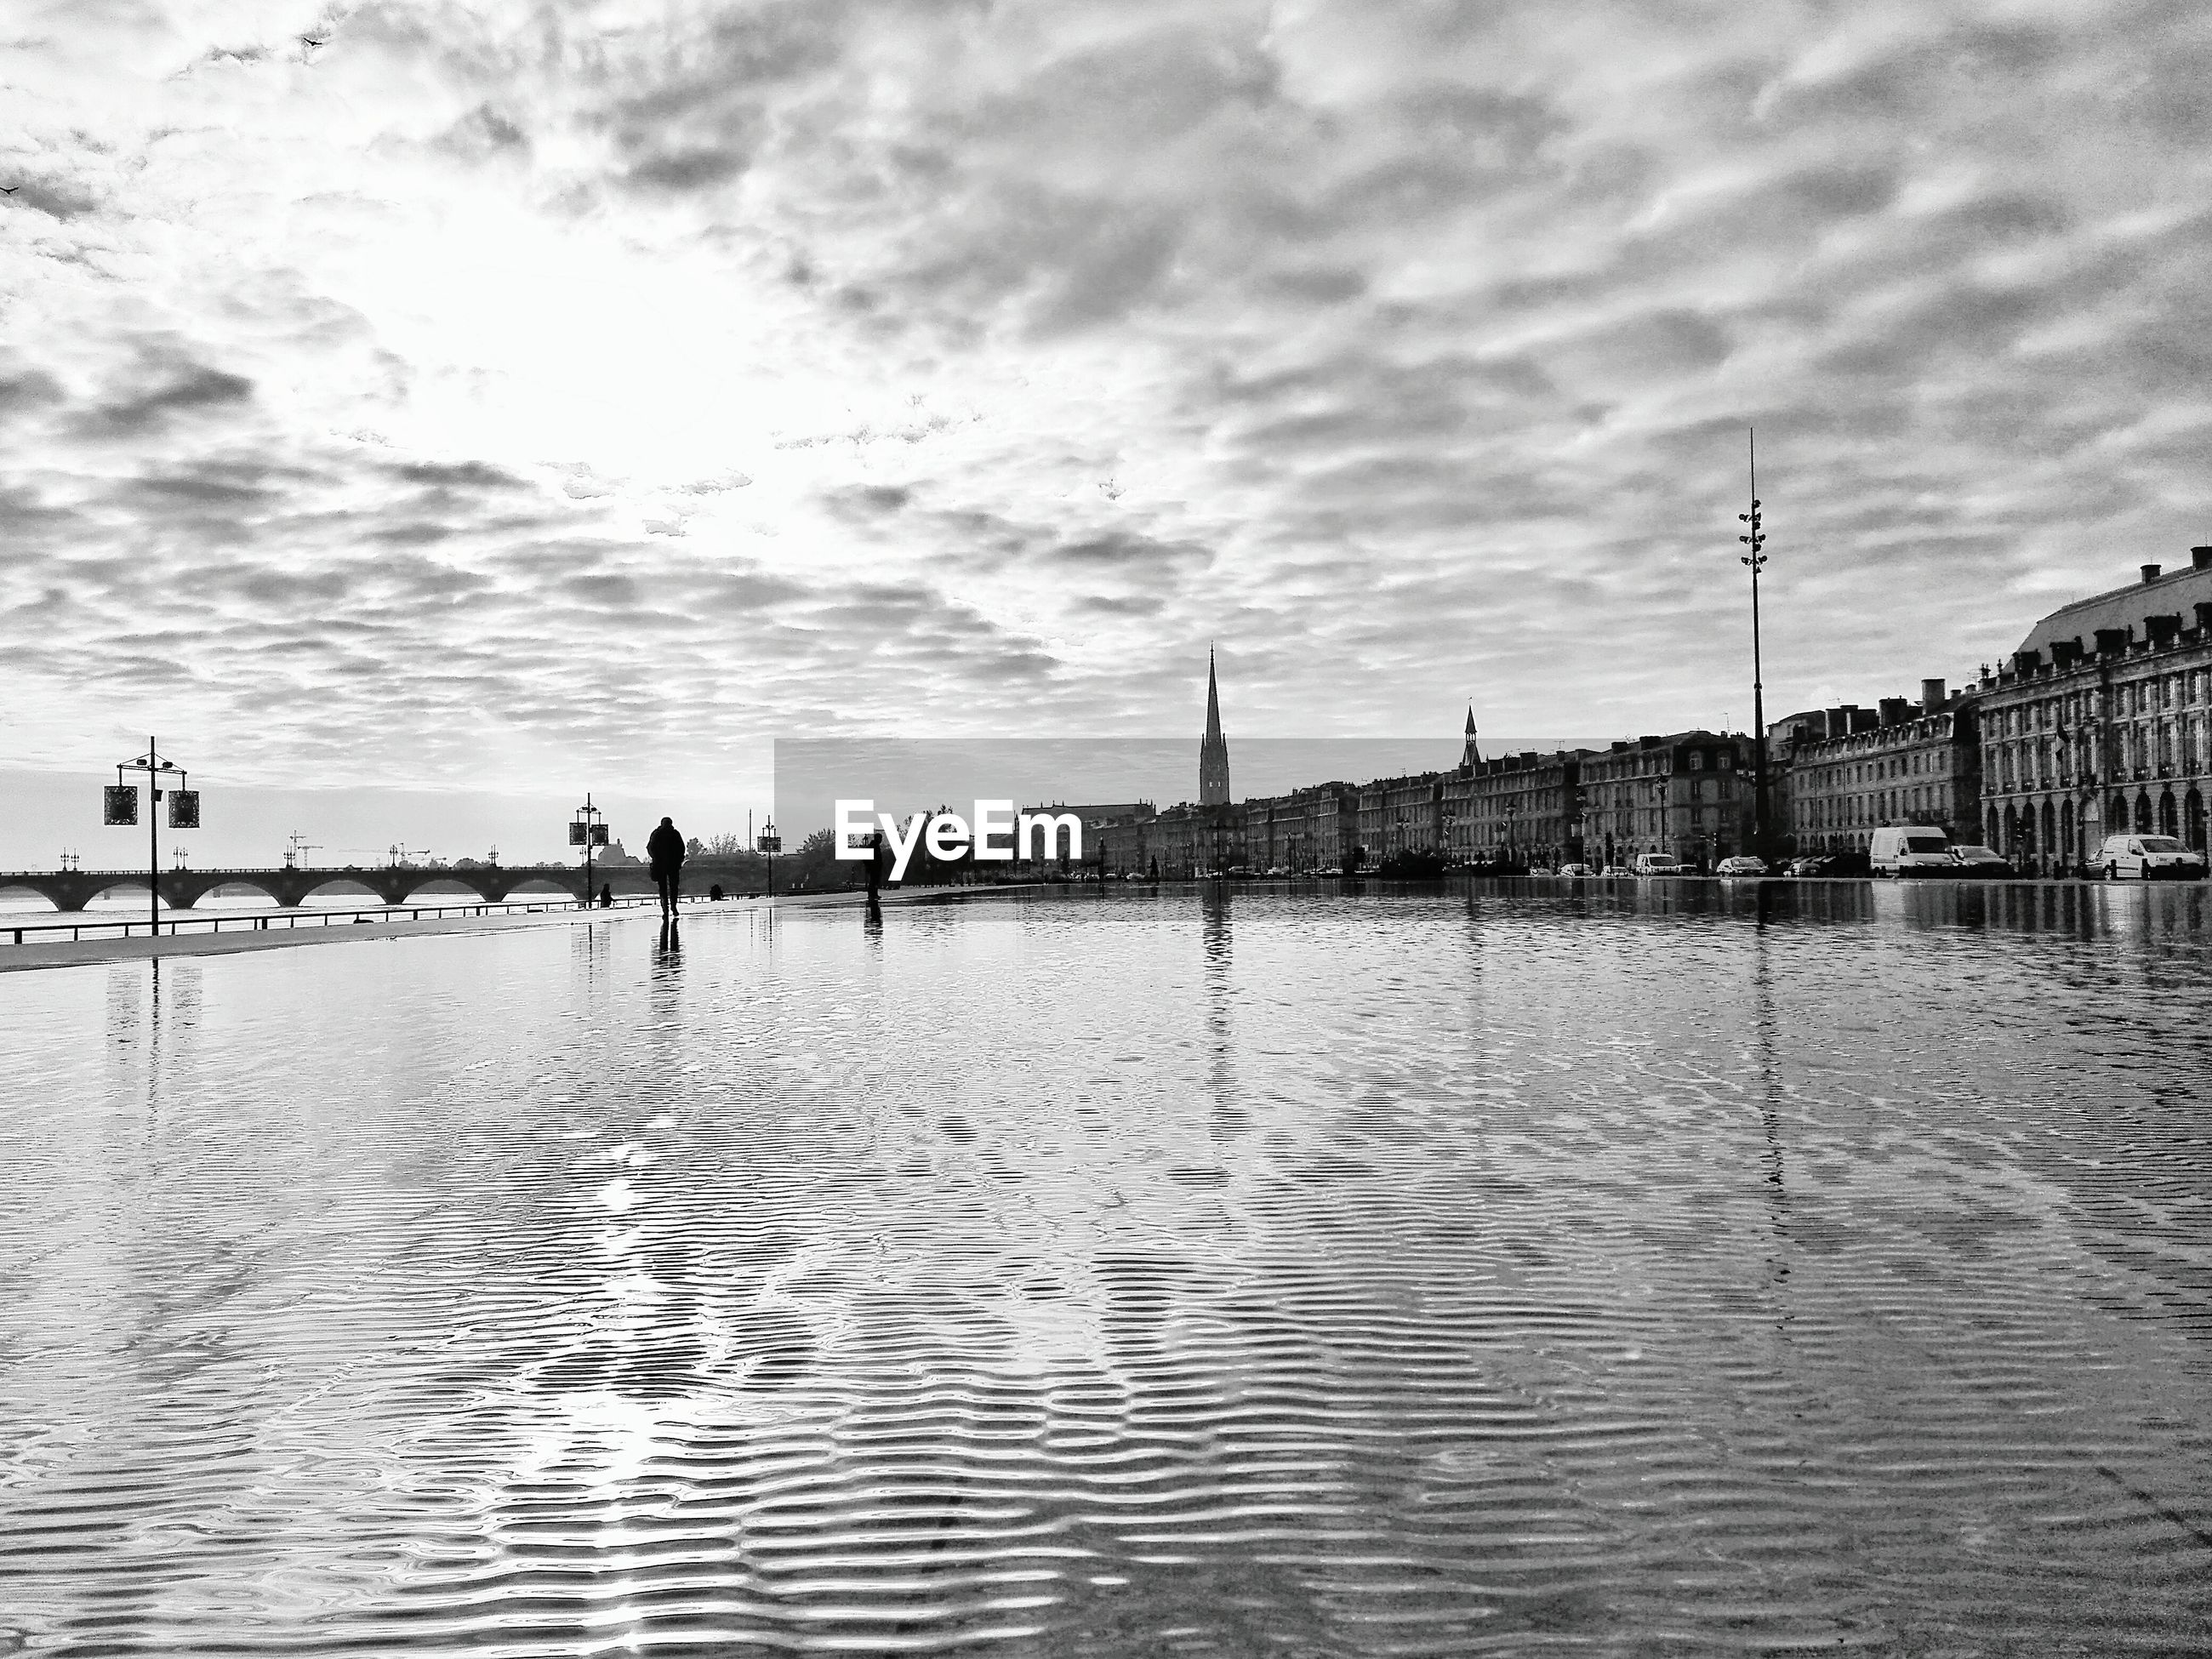 City by garonne river against cloudy sky